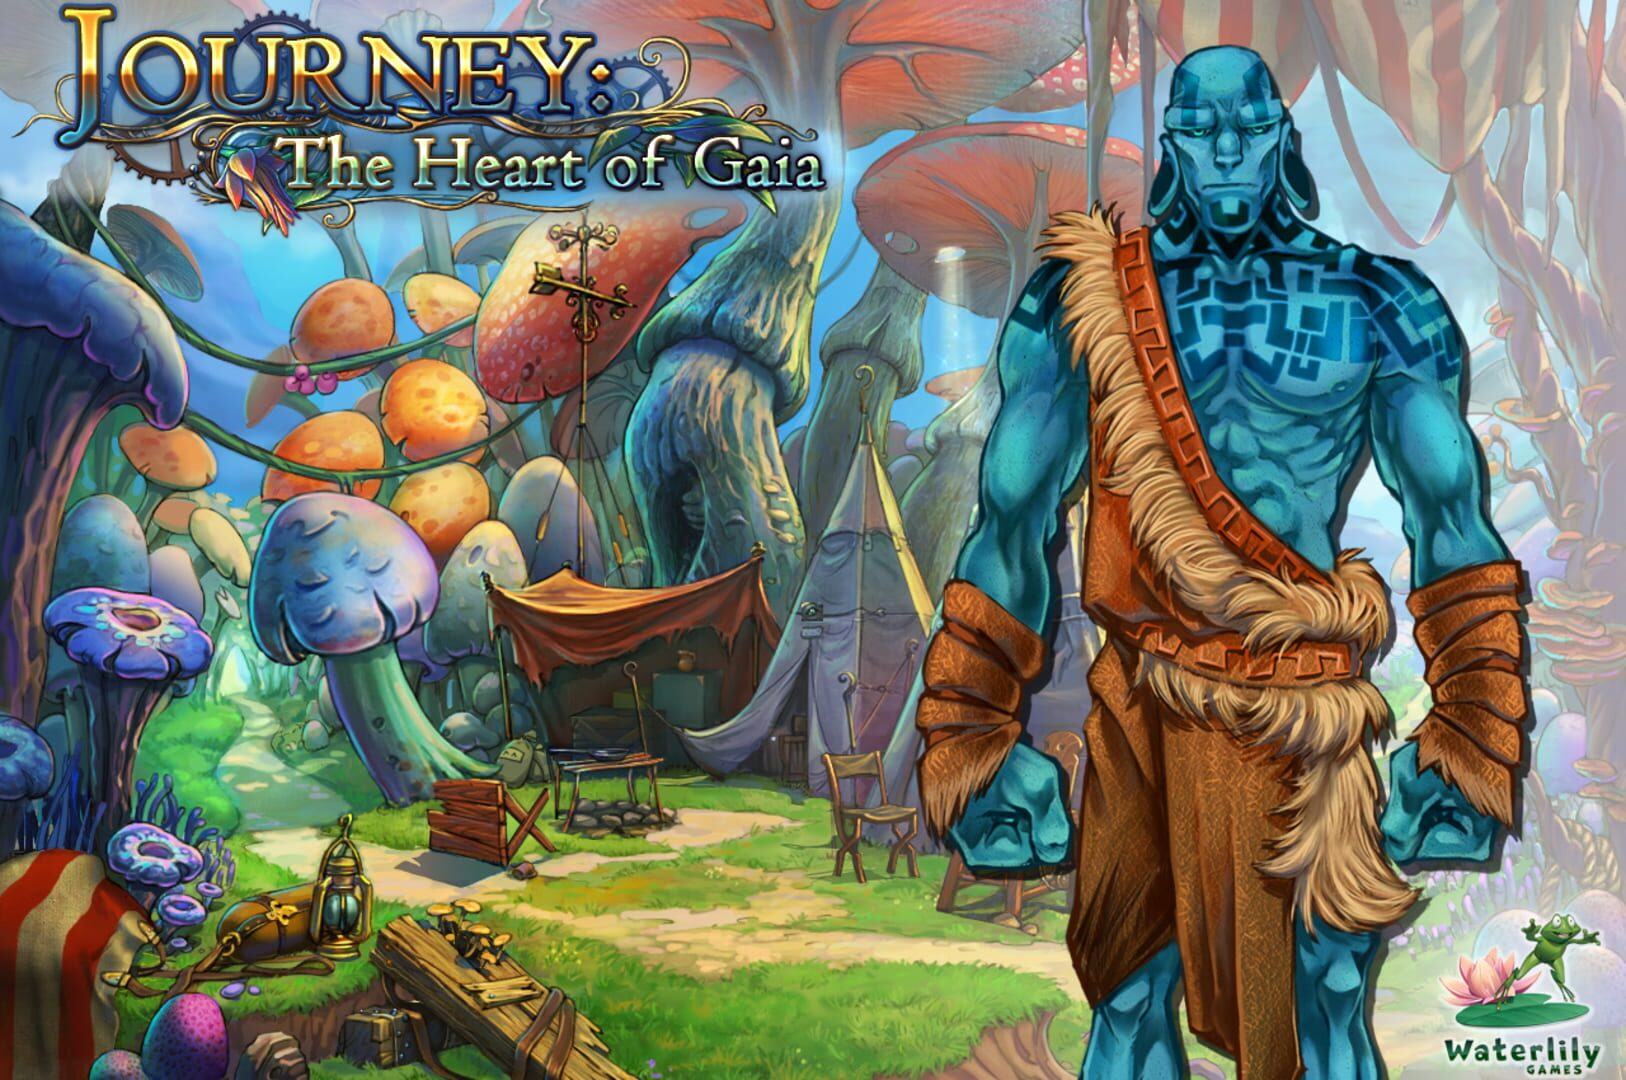 buy Journey - The Heart of Gaia cd key for all platform